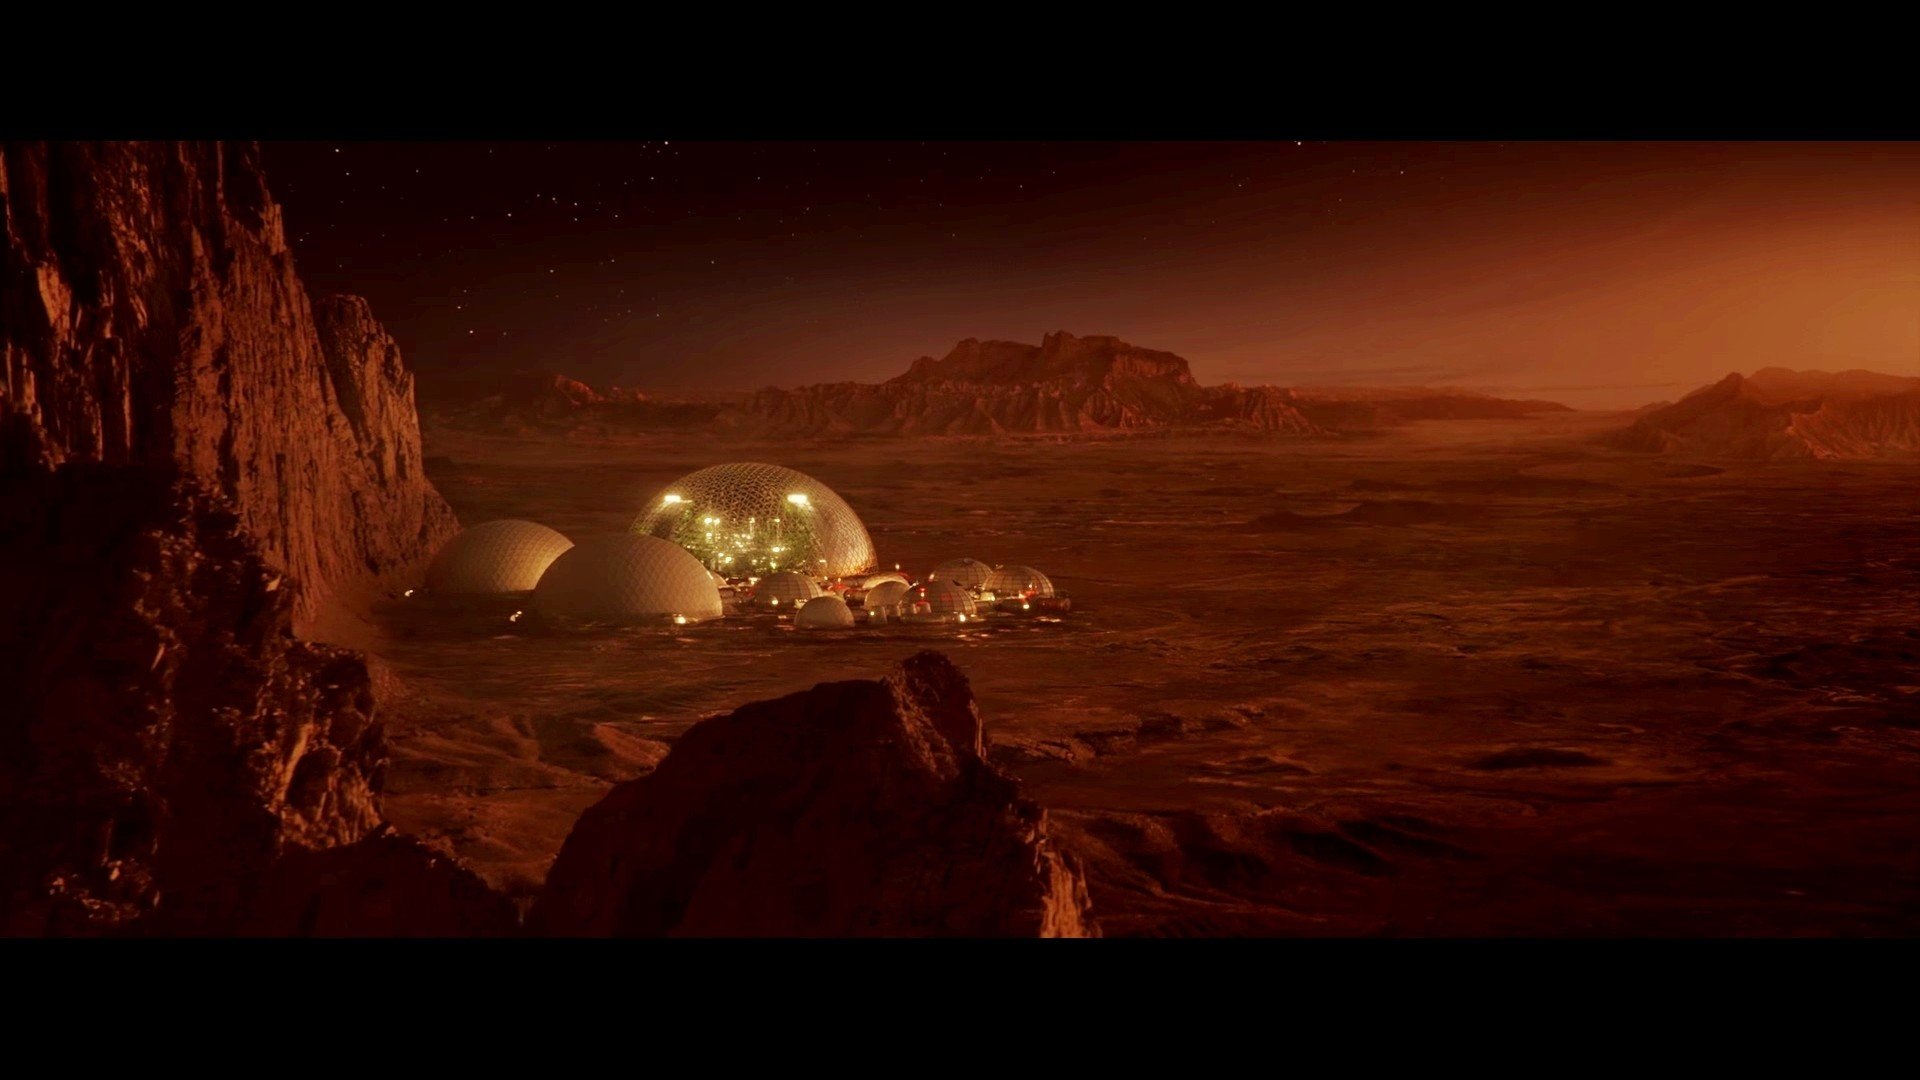 Res: 1920x1080, East Texas colony on Mars - The Space Between Us movie wallpaper